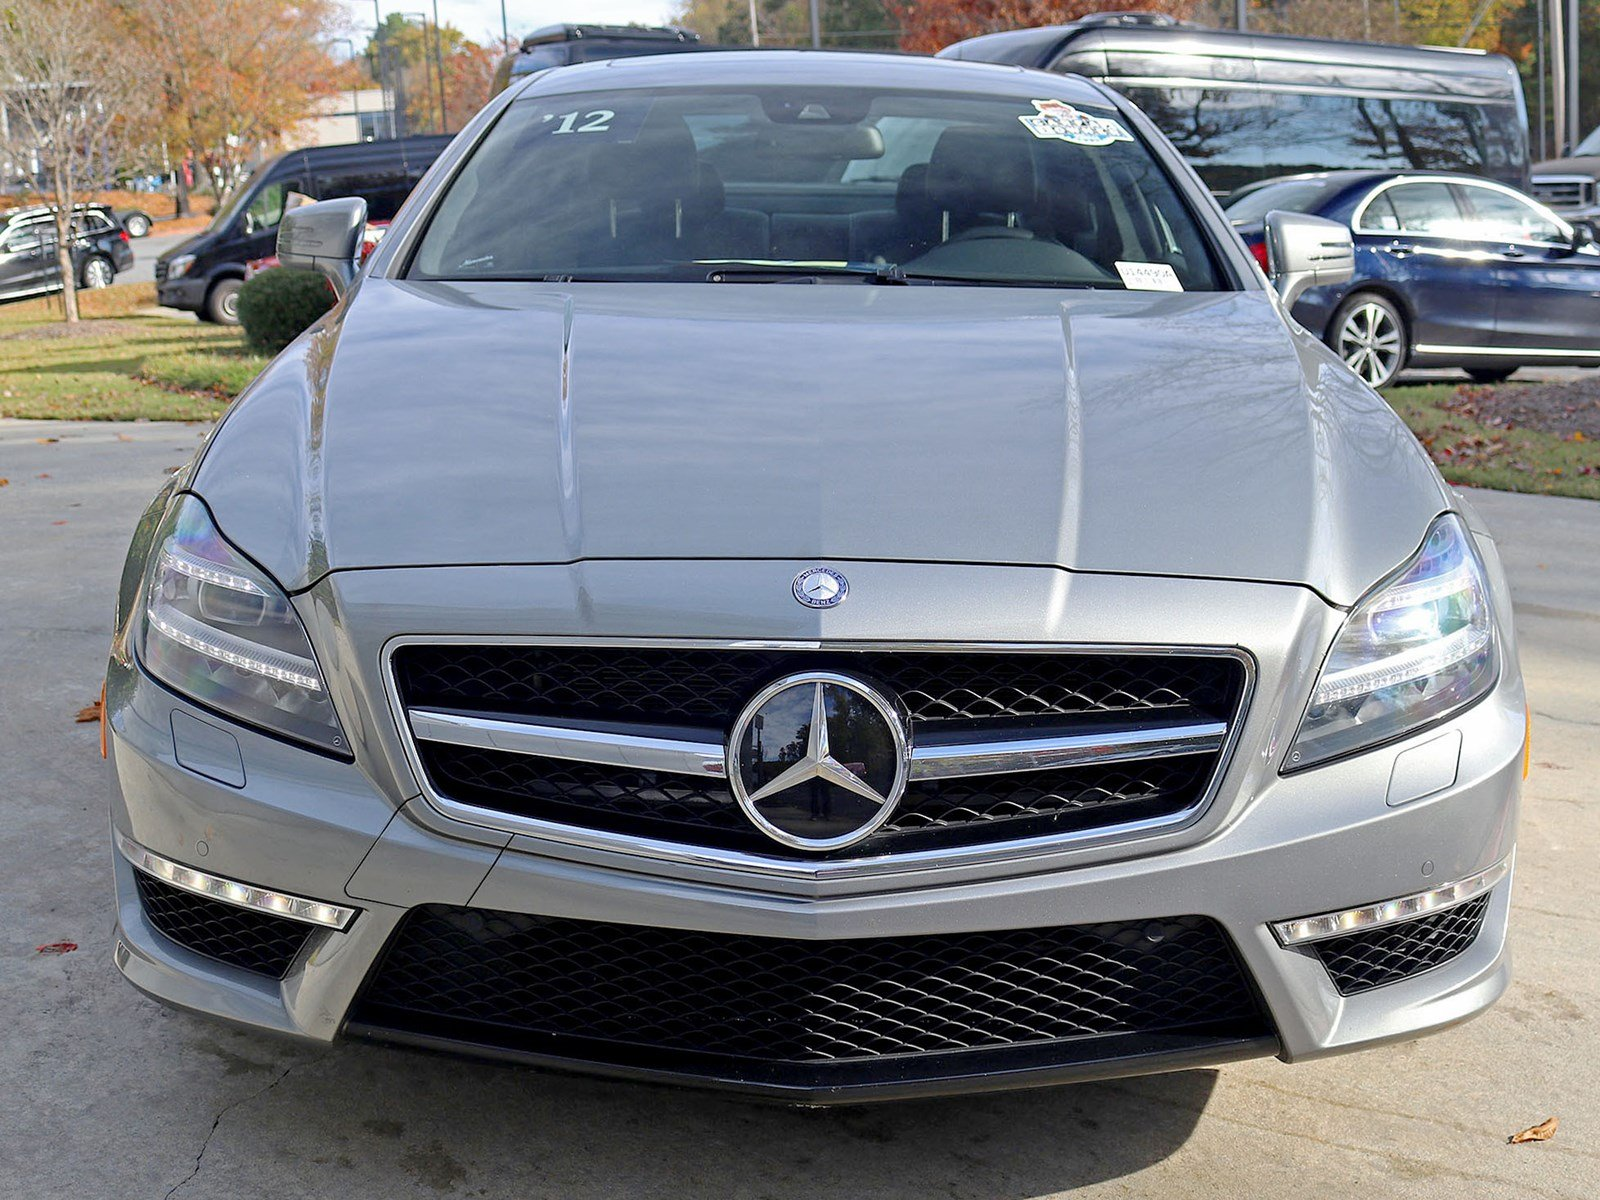 Pre Owned 2012 Mercedes Benz CLS CLS 63 AMG Sedan Coupe in Atlanta